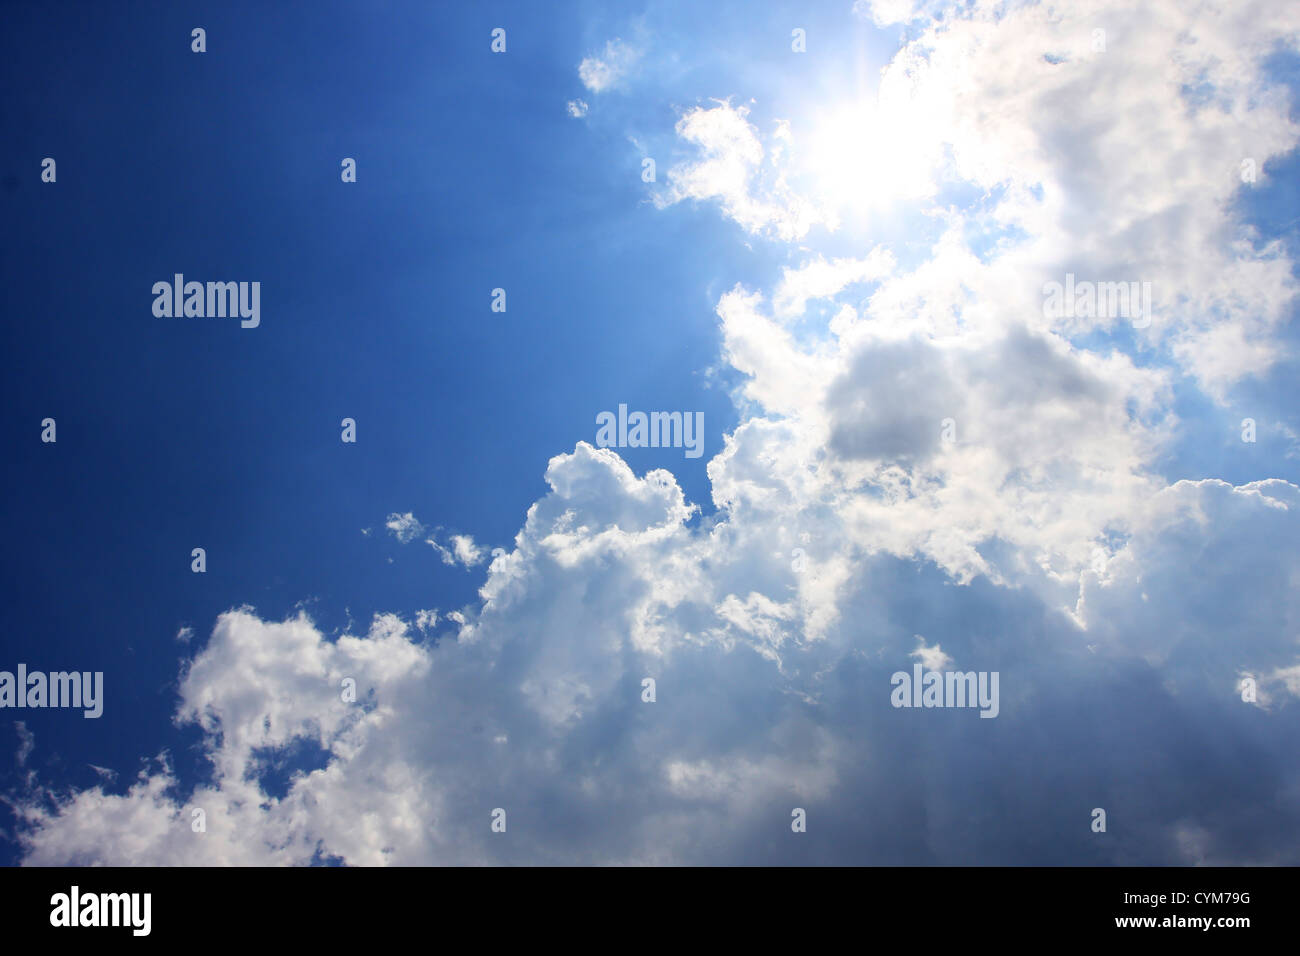 clouds on a blue sky, sun shines strongly behind some clouds, good copy space to the left - Stock Image